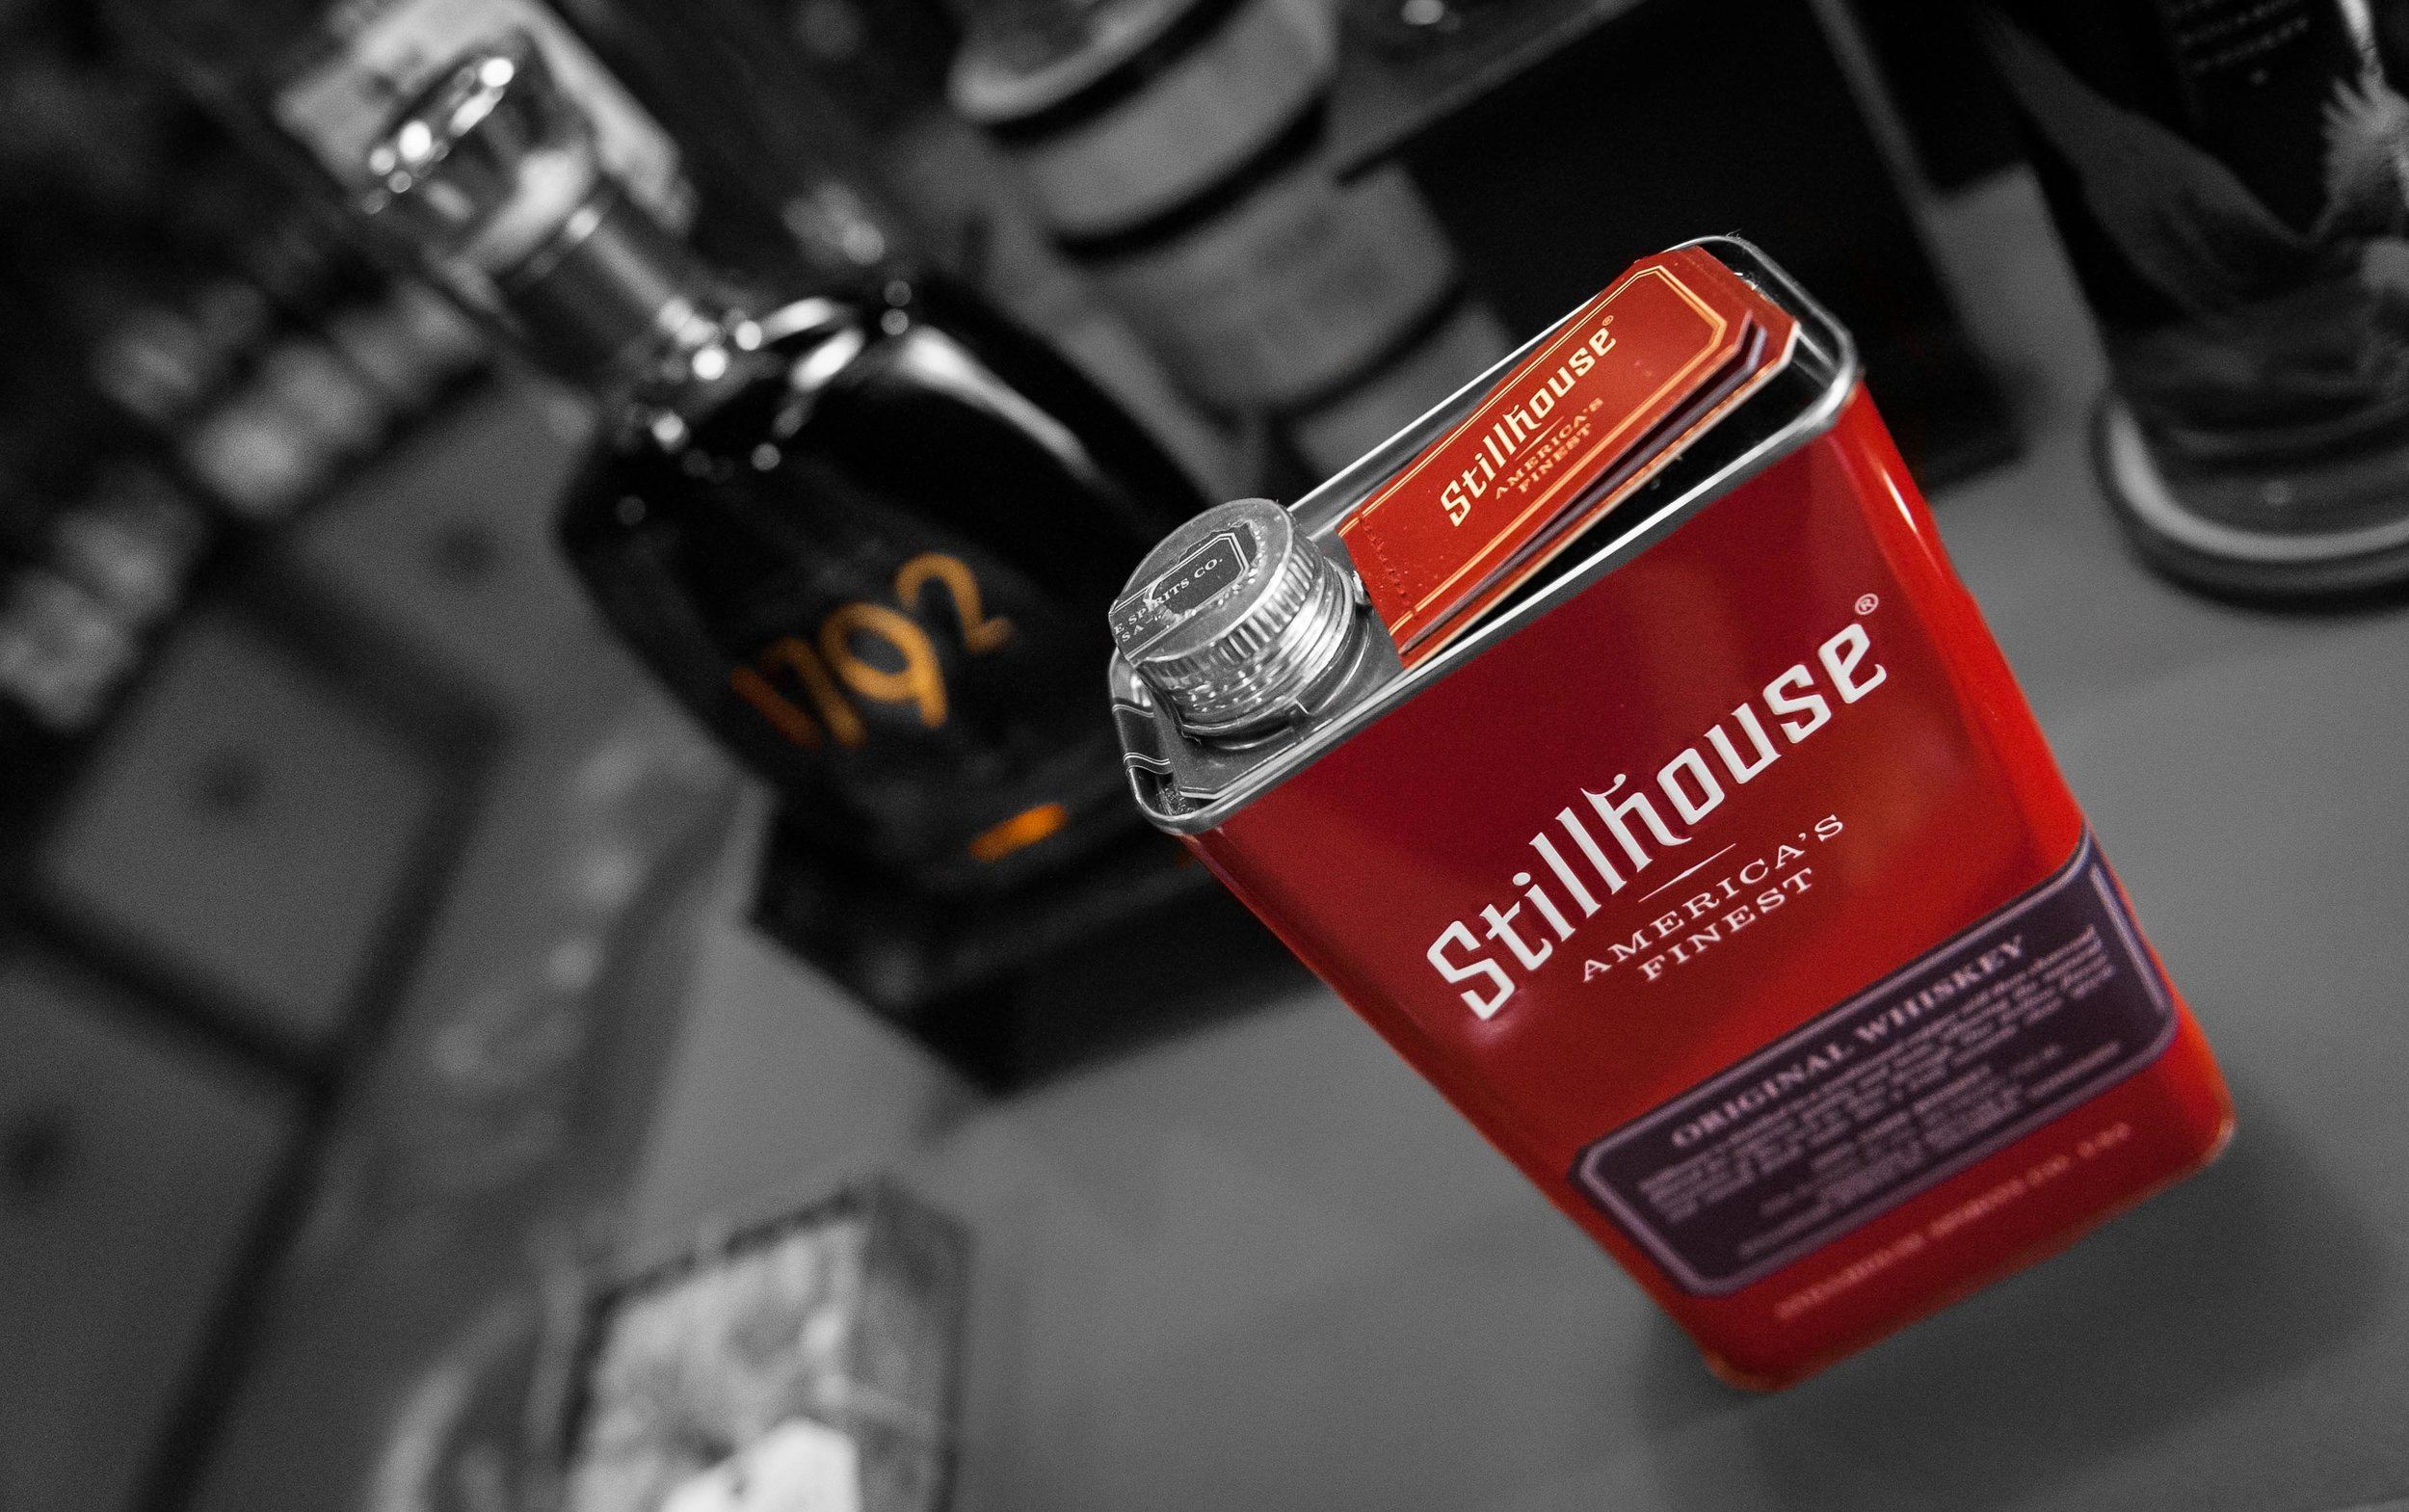 Nicks Chilled & Distilled Stillhouse Whiskey